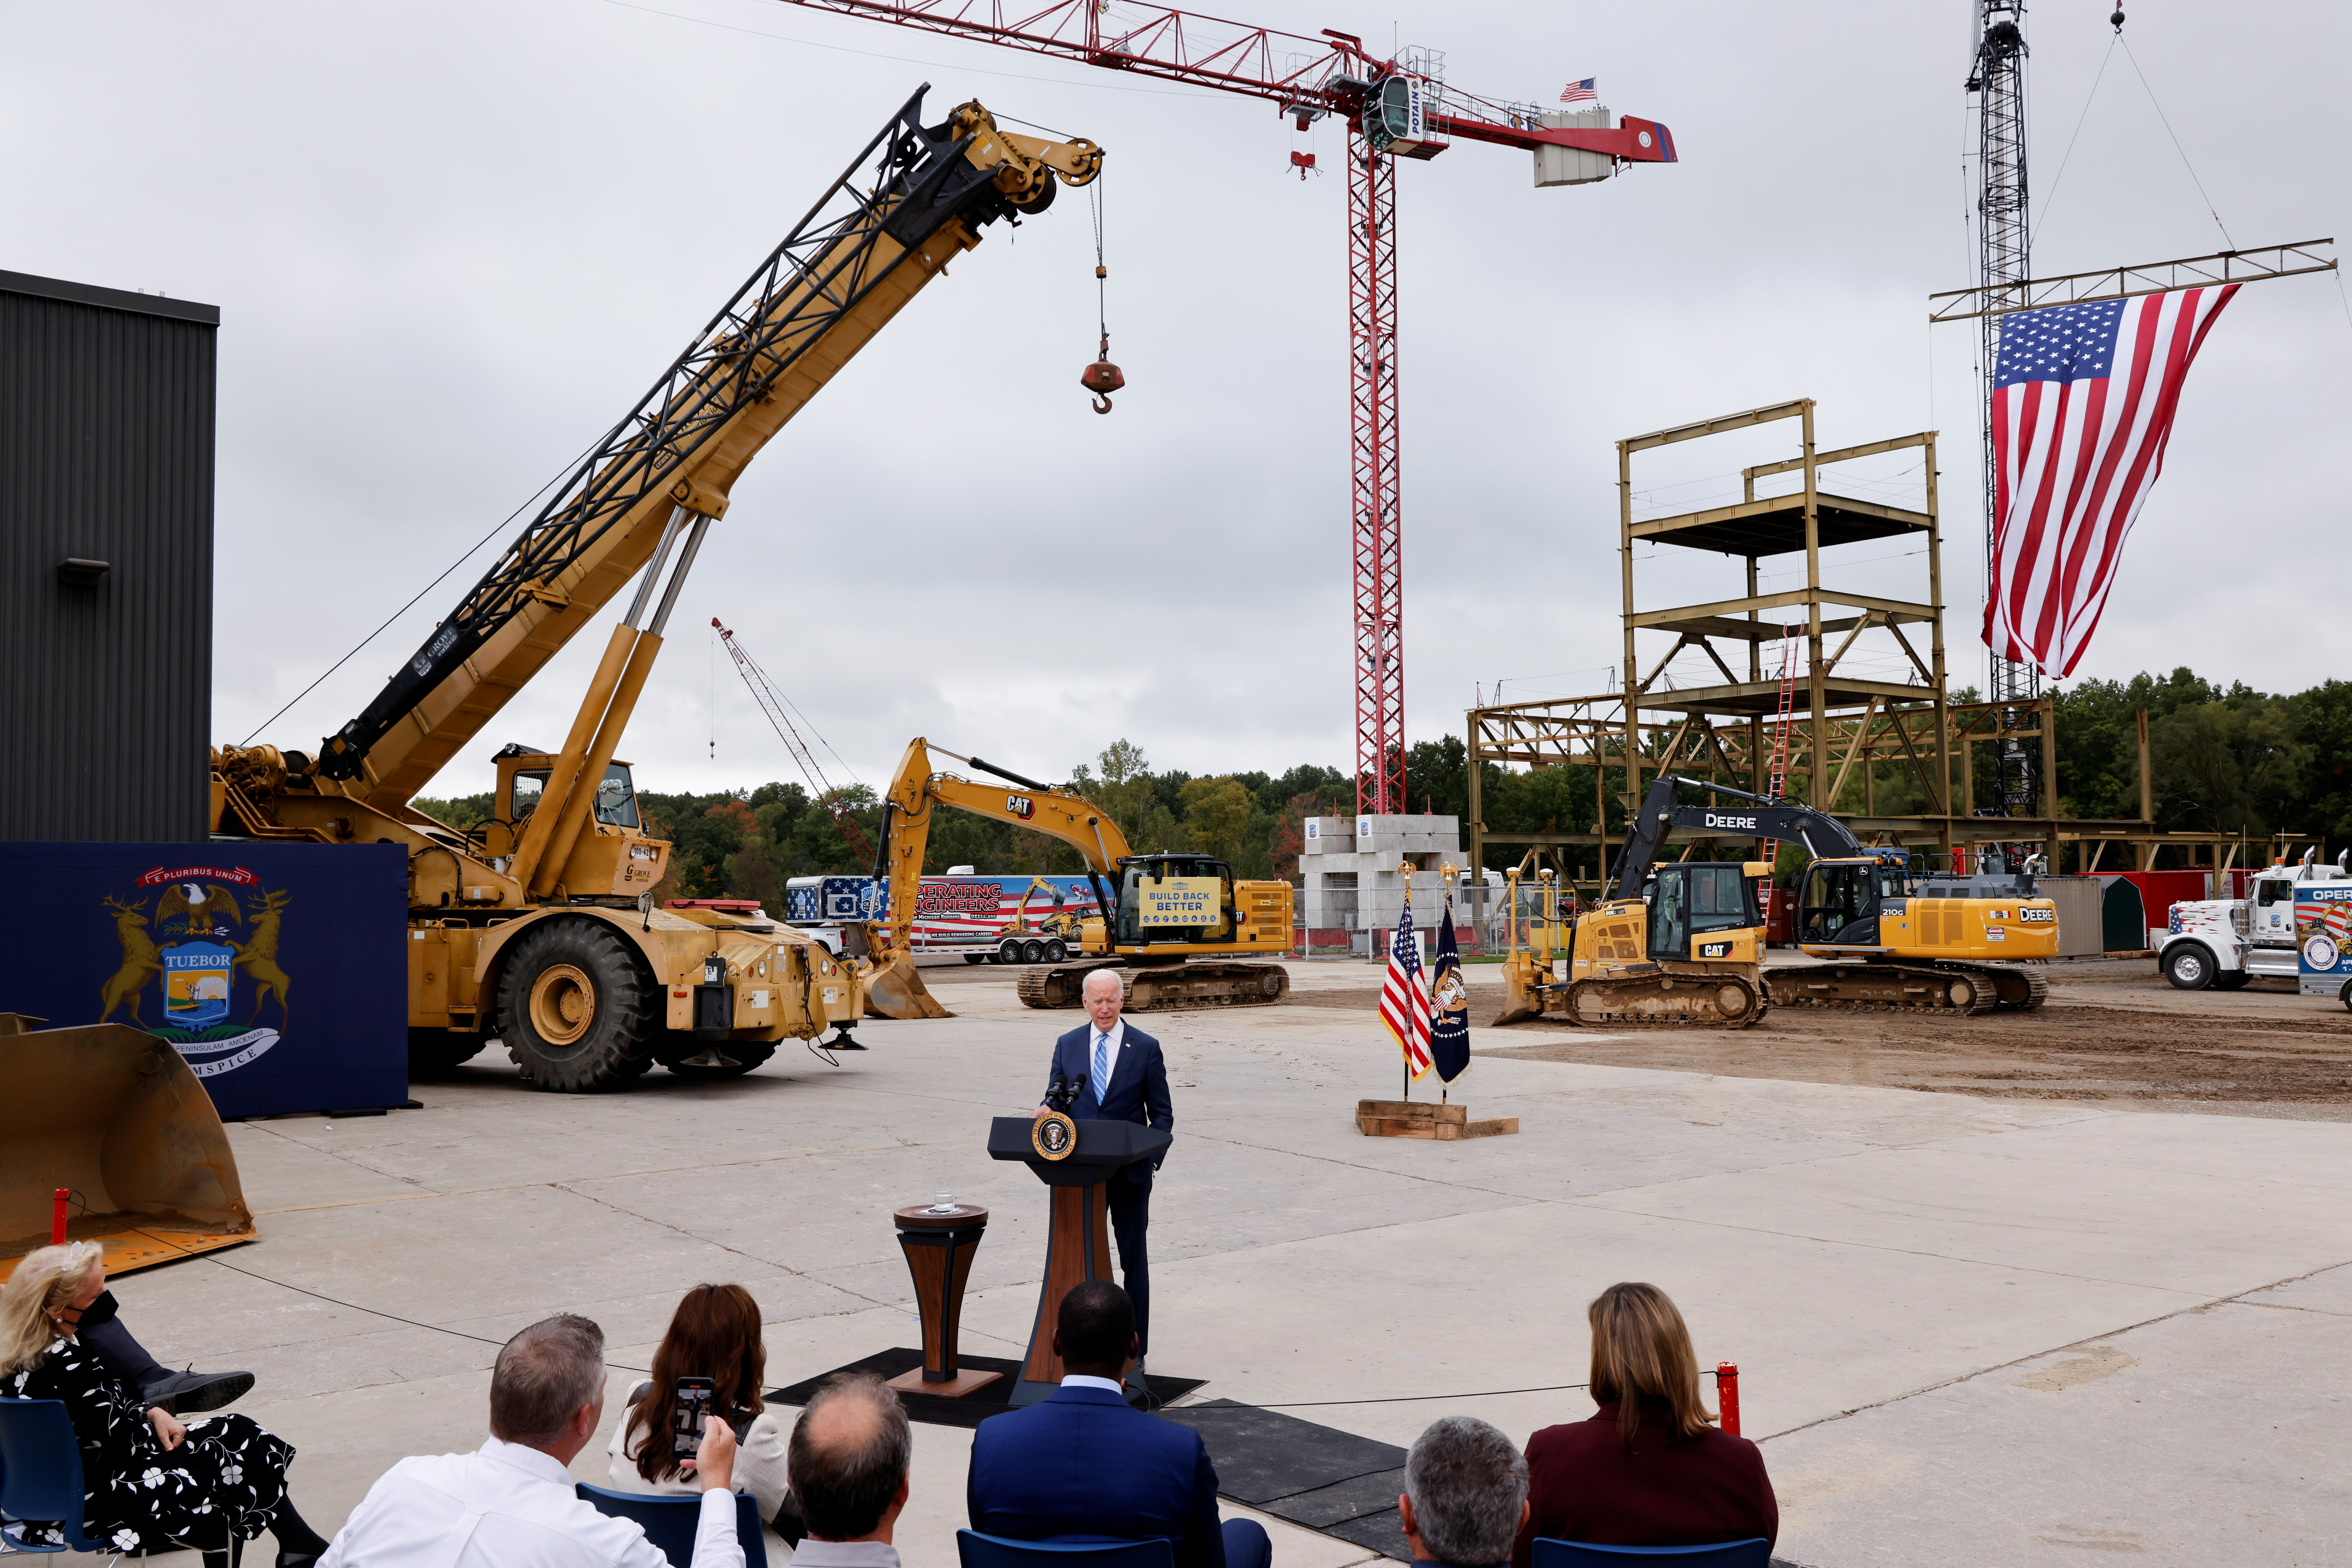 U.S. President Joe Biden delivers remarks on infrastructure investments at the International Union of Operating Engineers Local 324 training facility in Howell, Michigan, U.S. October 5, 2021. REUTERS/Jonathan Ernst